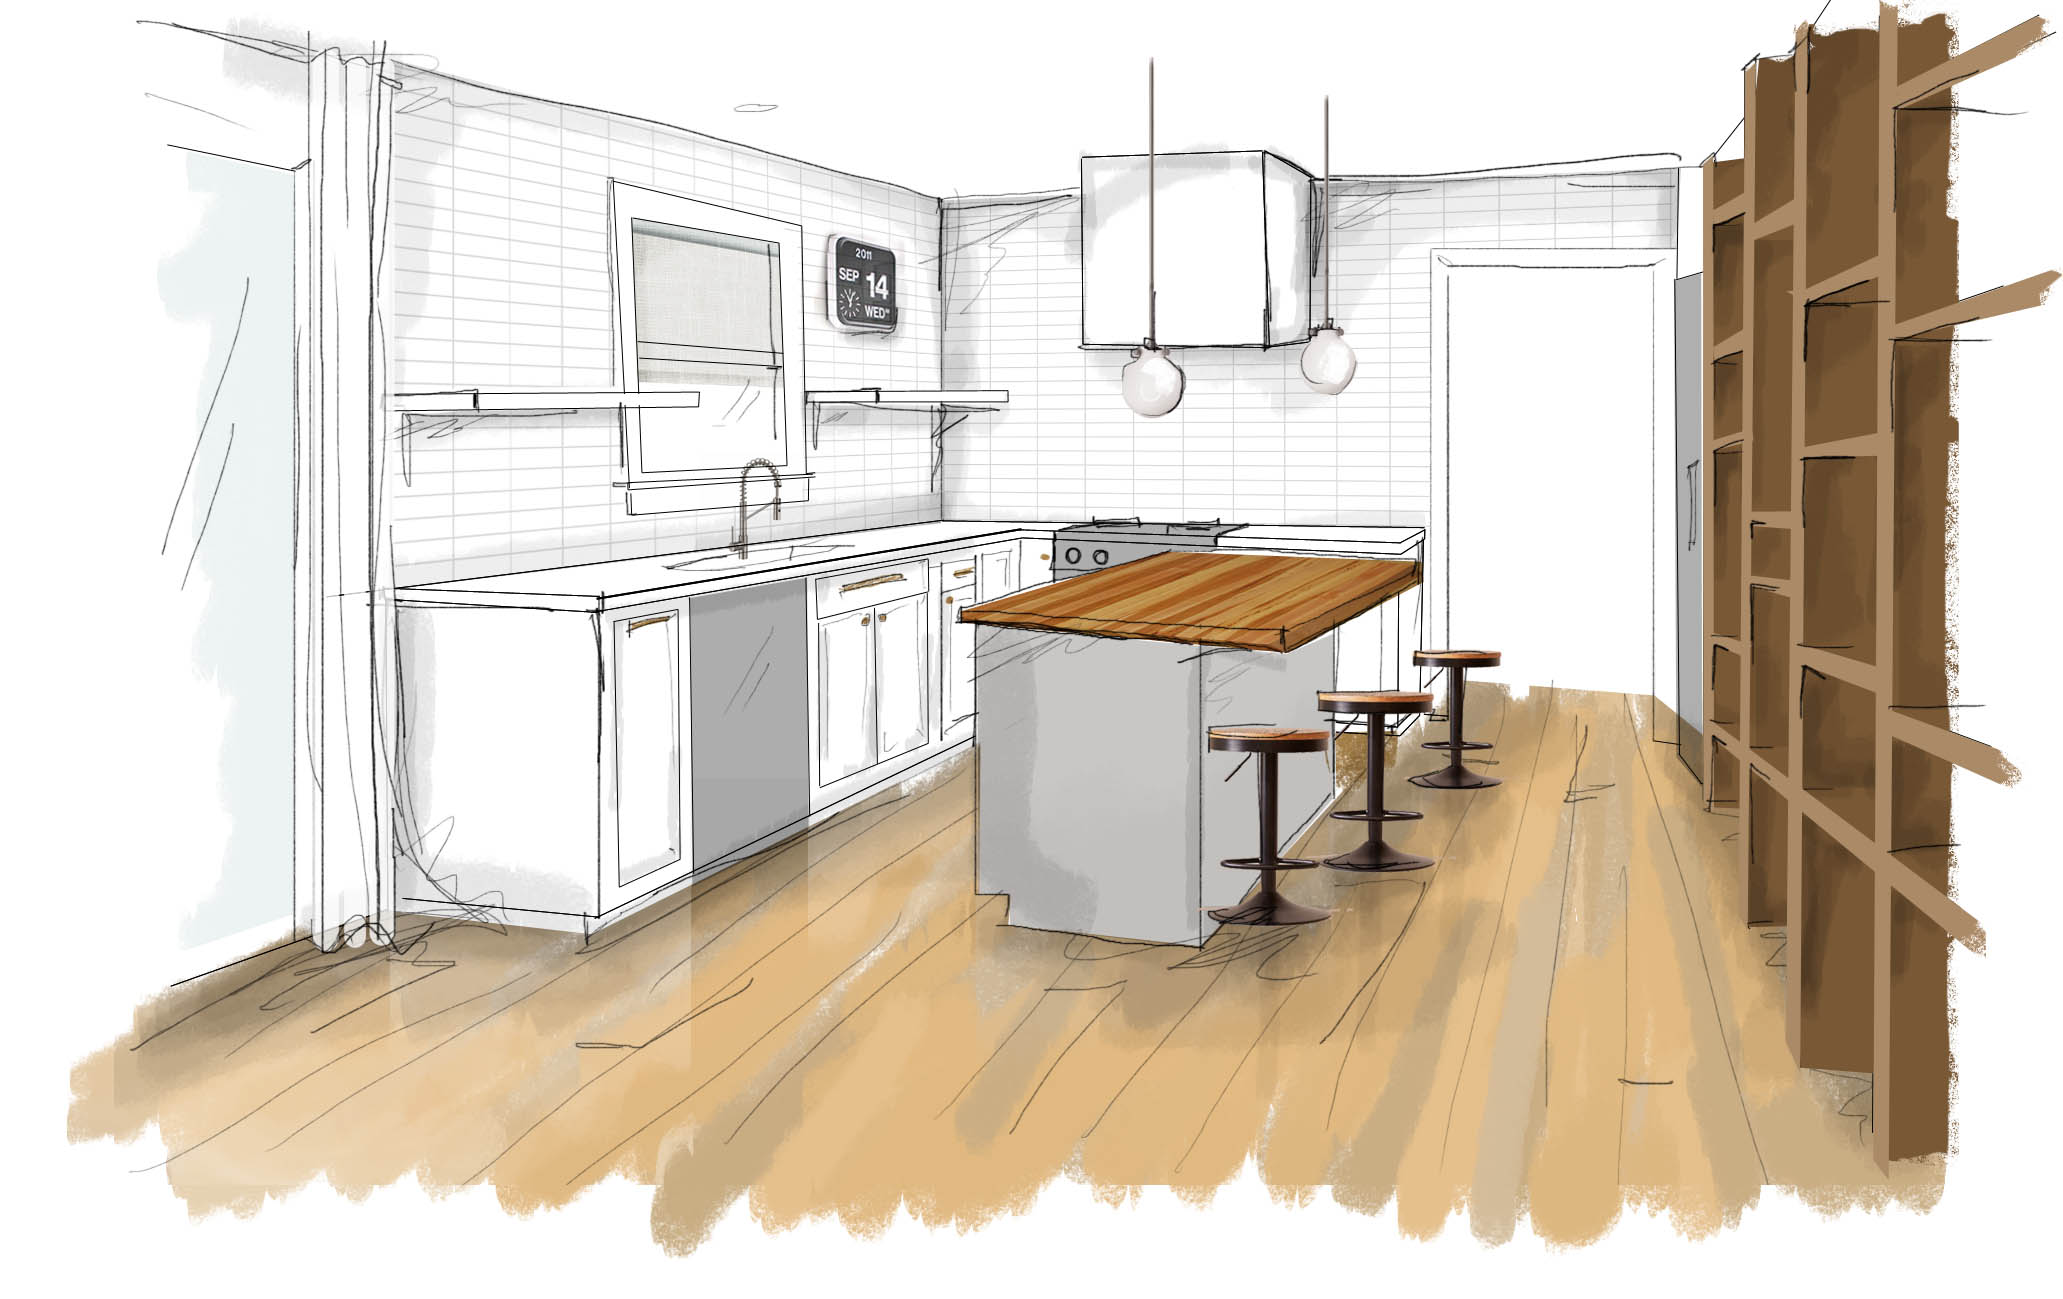 Kitchen Perspective Rendering